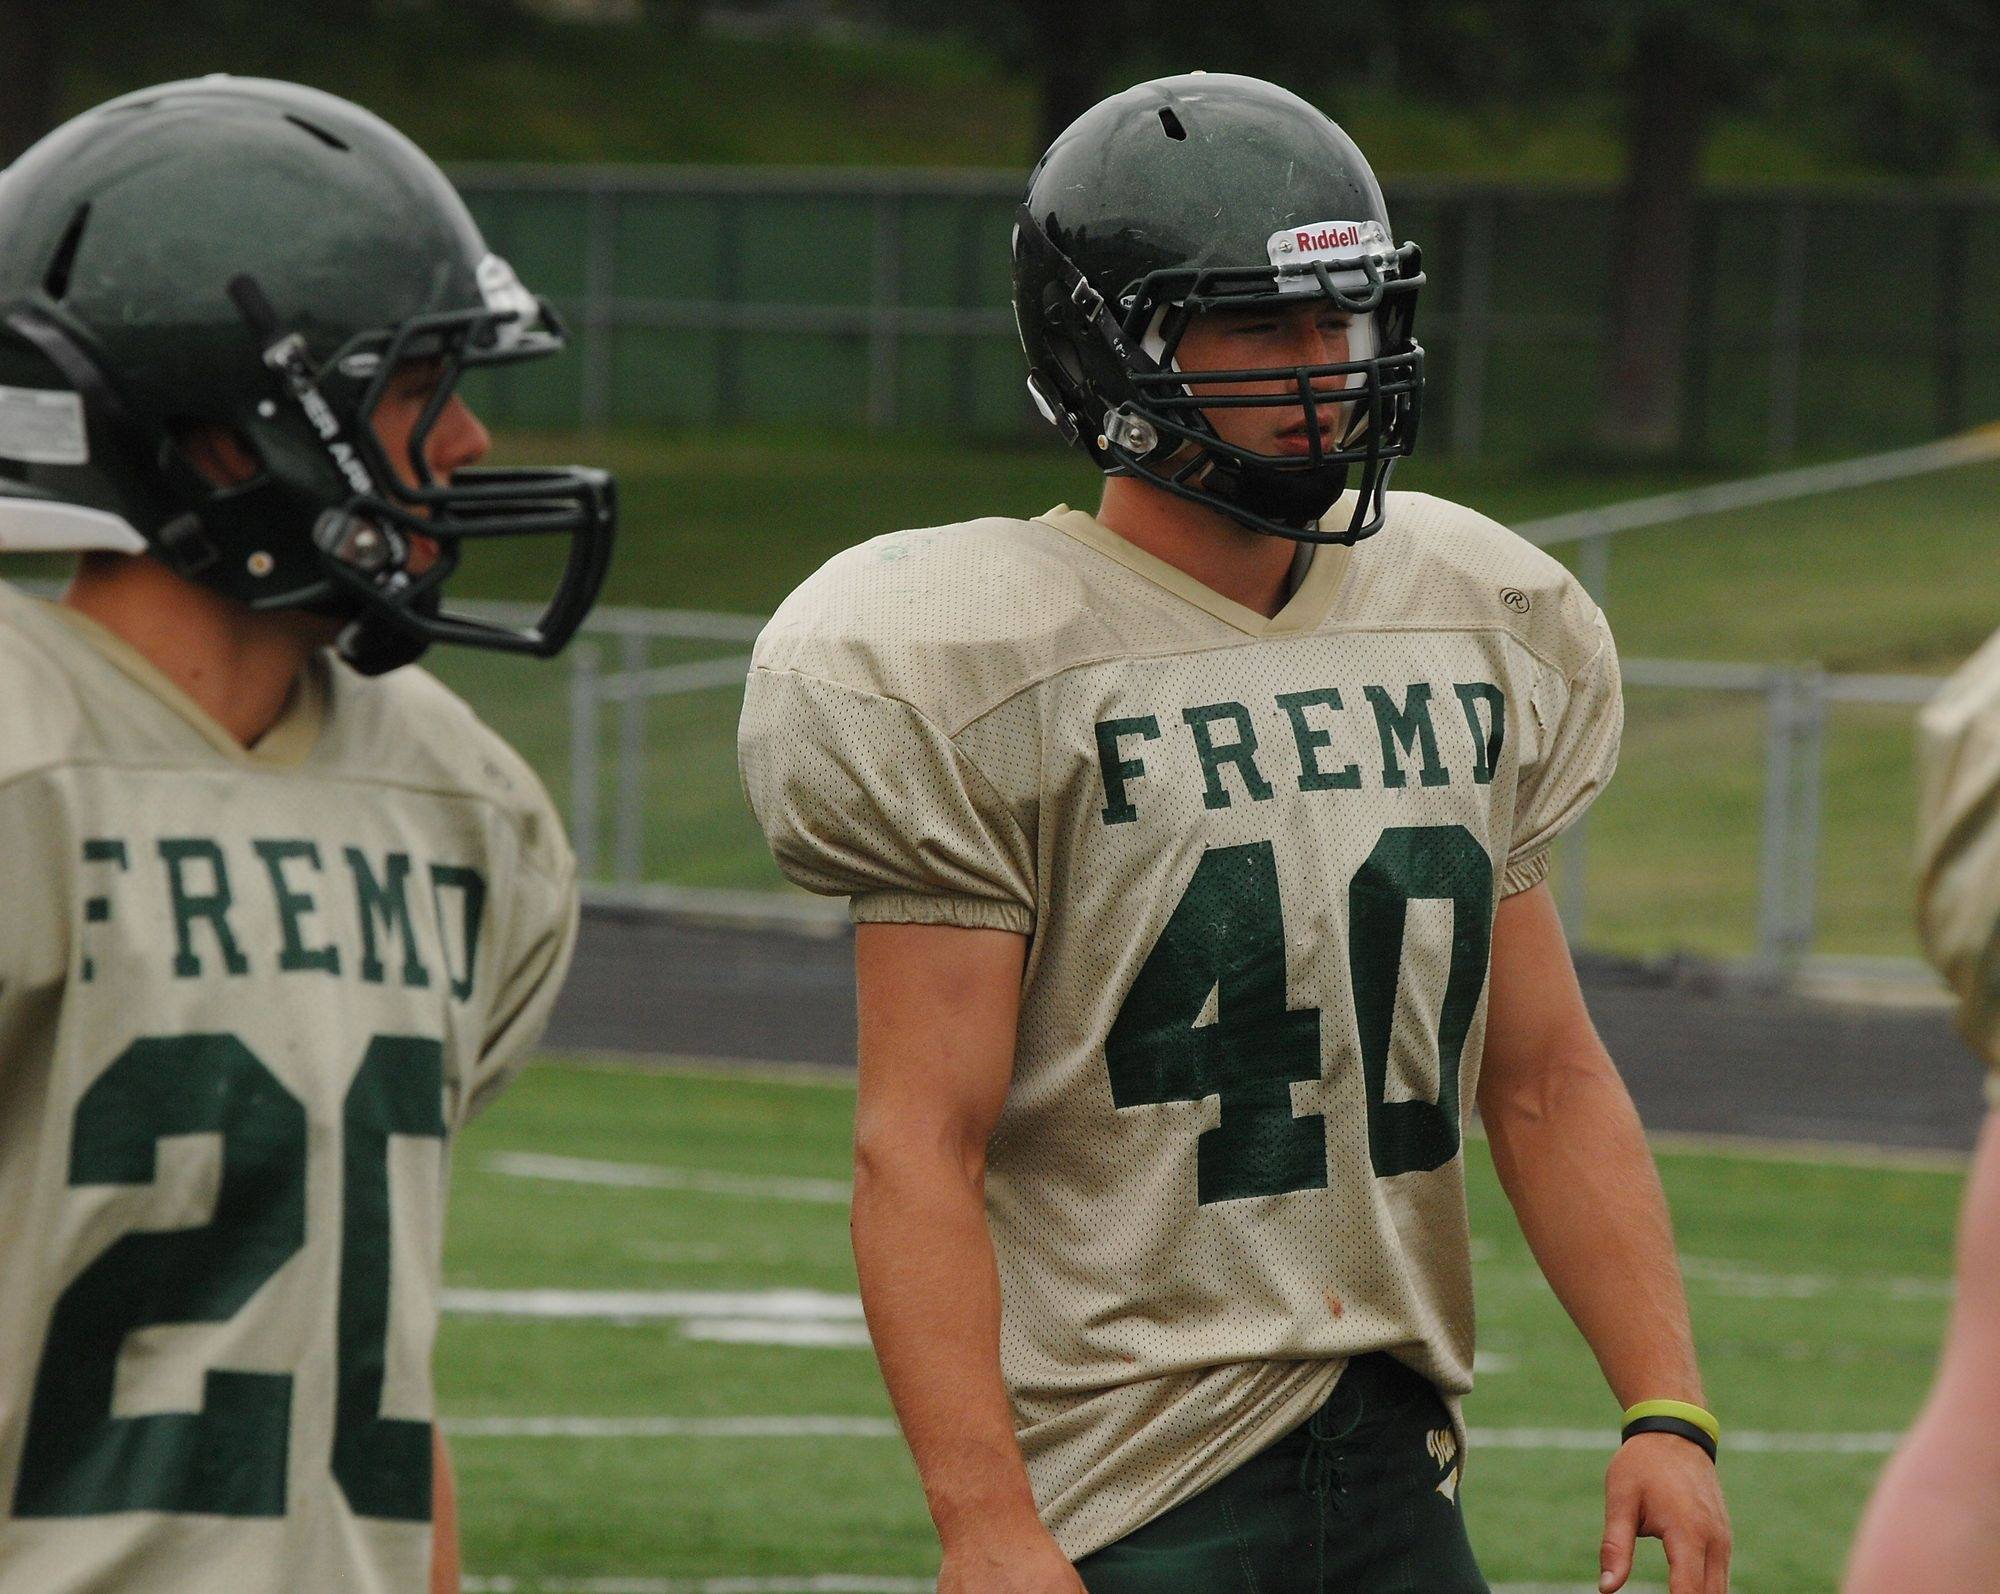 Fremd's Michael Sahli gets ready to run a scrimmage play during Tuesday's drills.